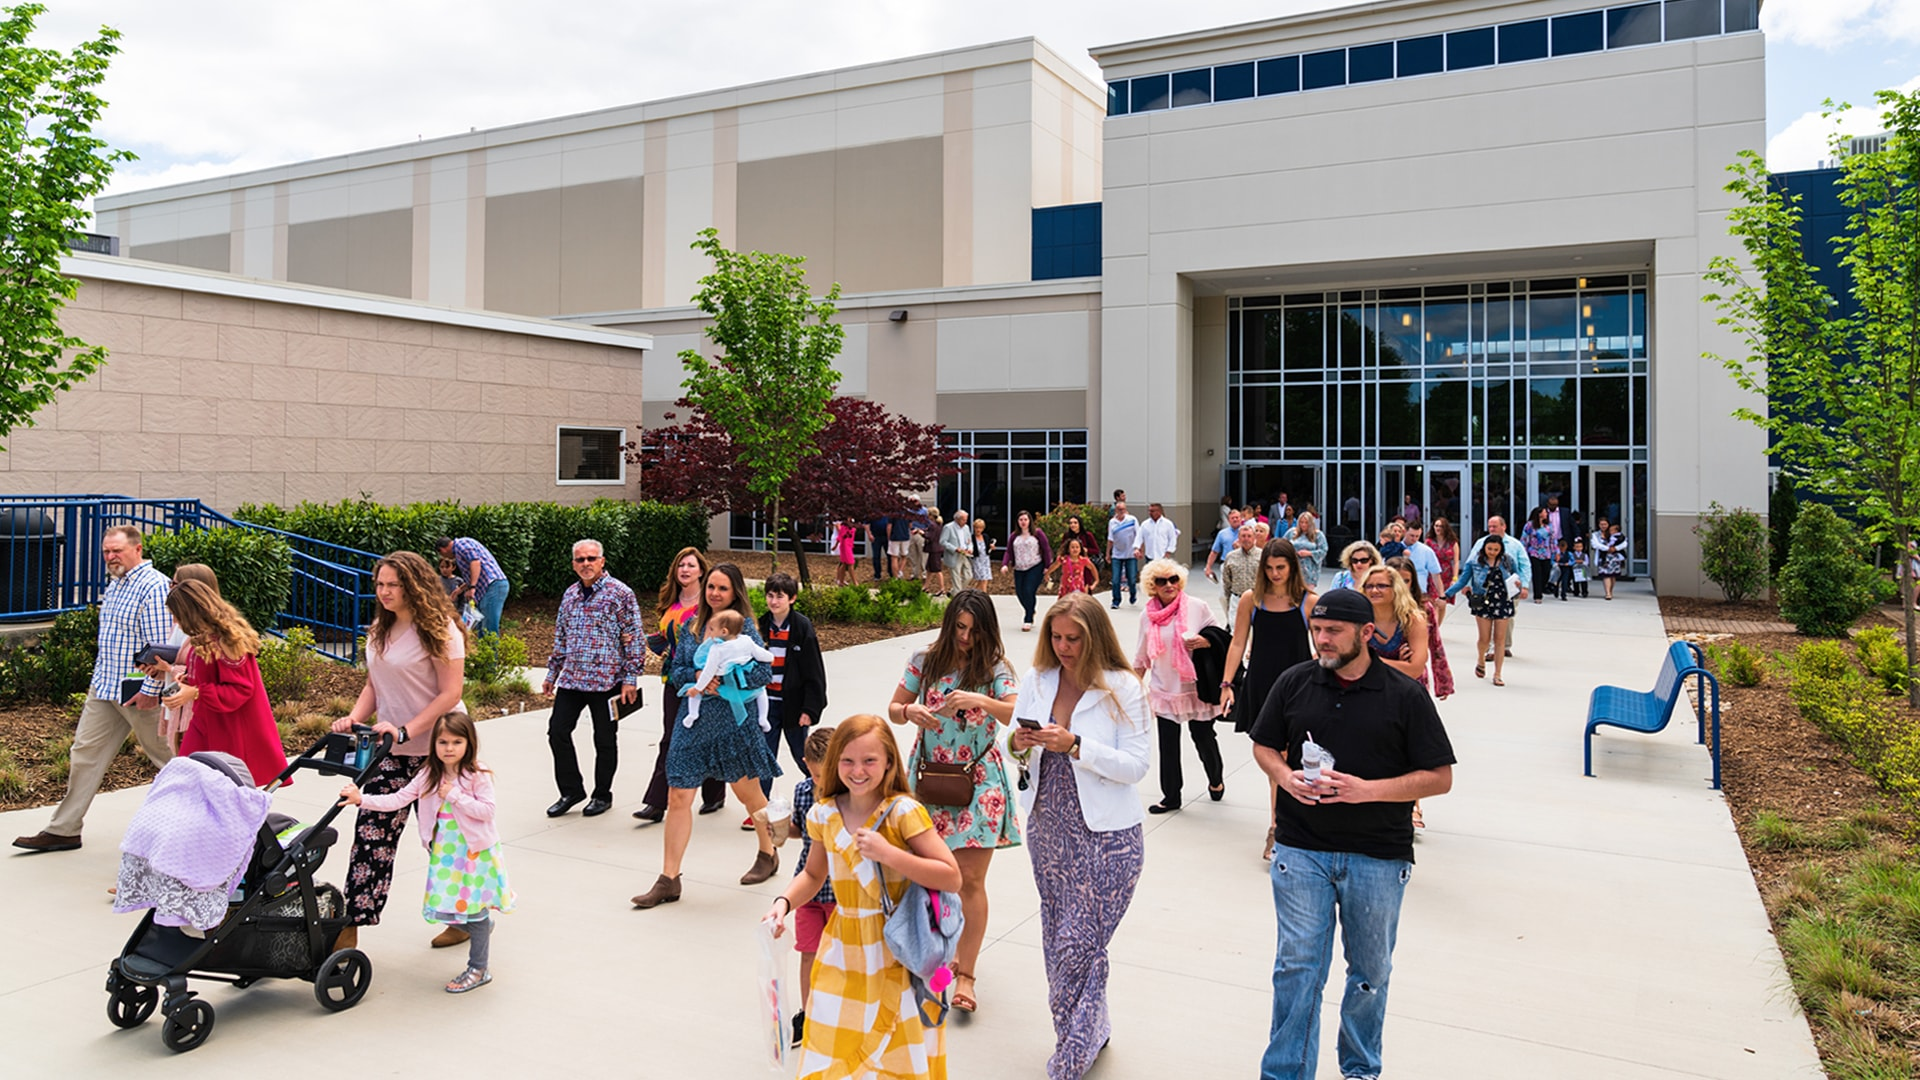 A crowd of all different ages and walks of life leaving the Brookwood Church building after a service